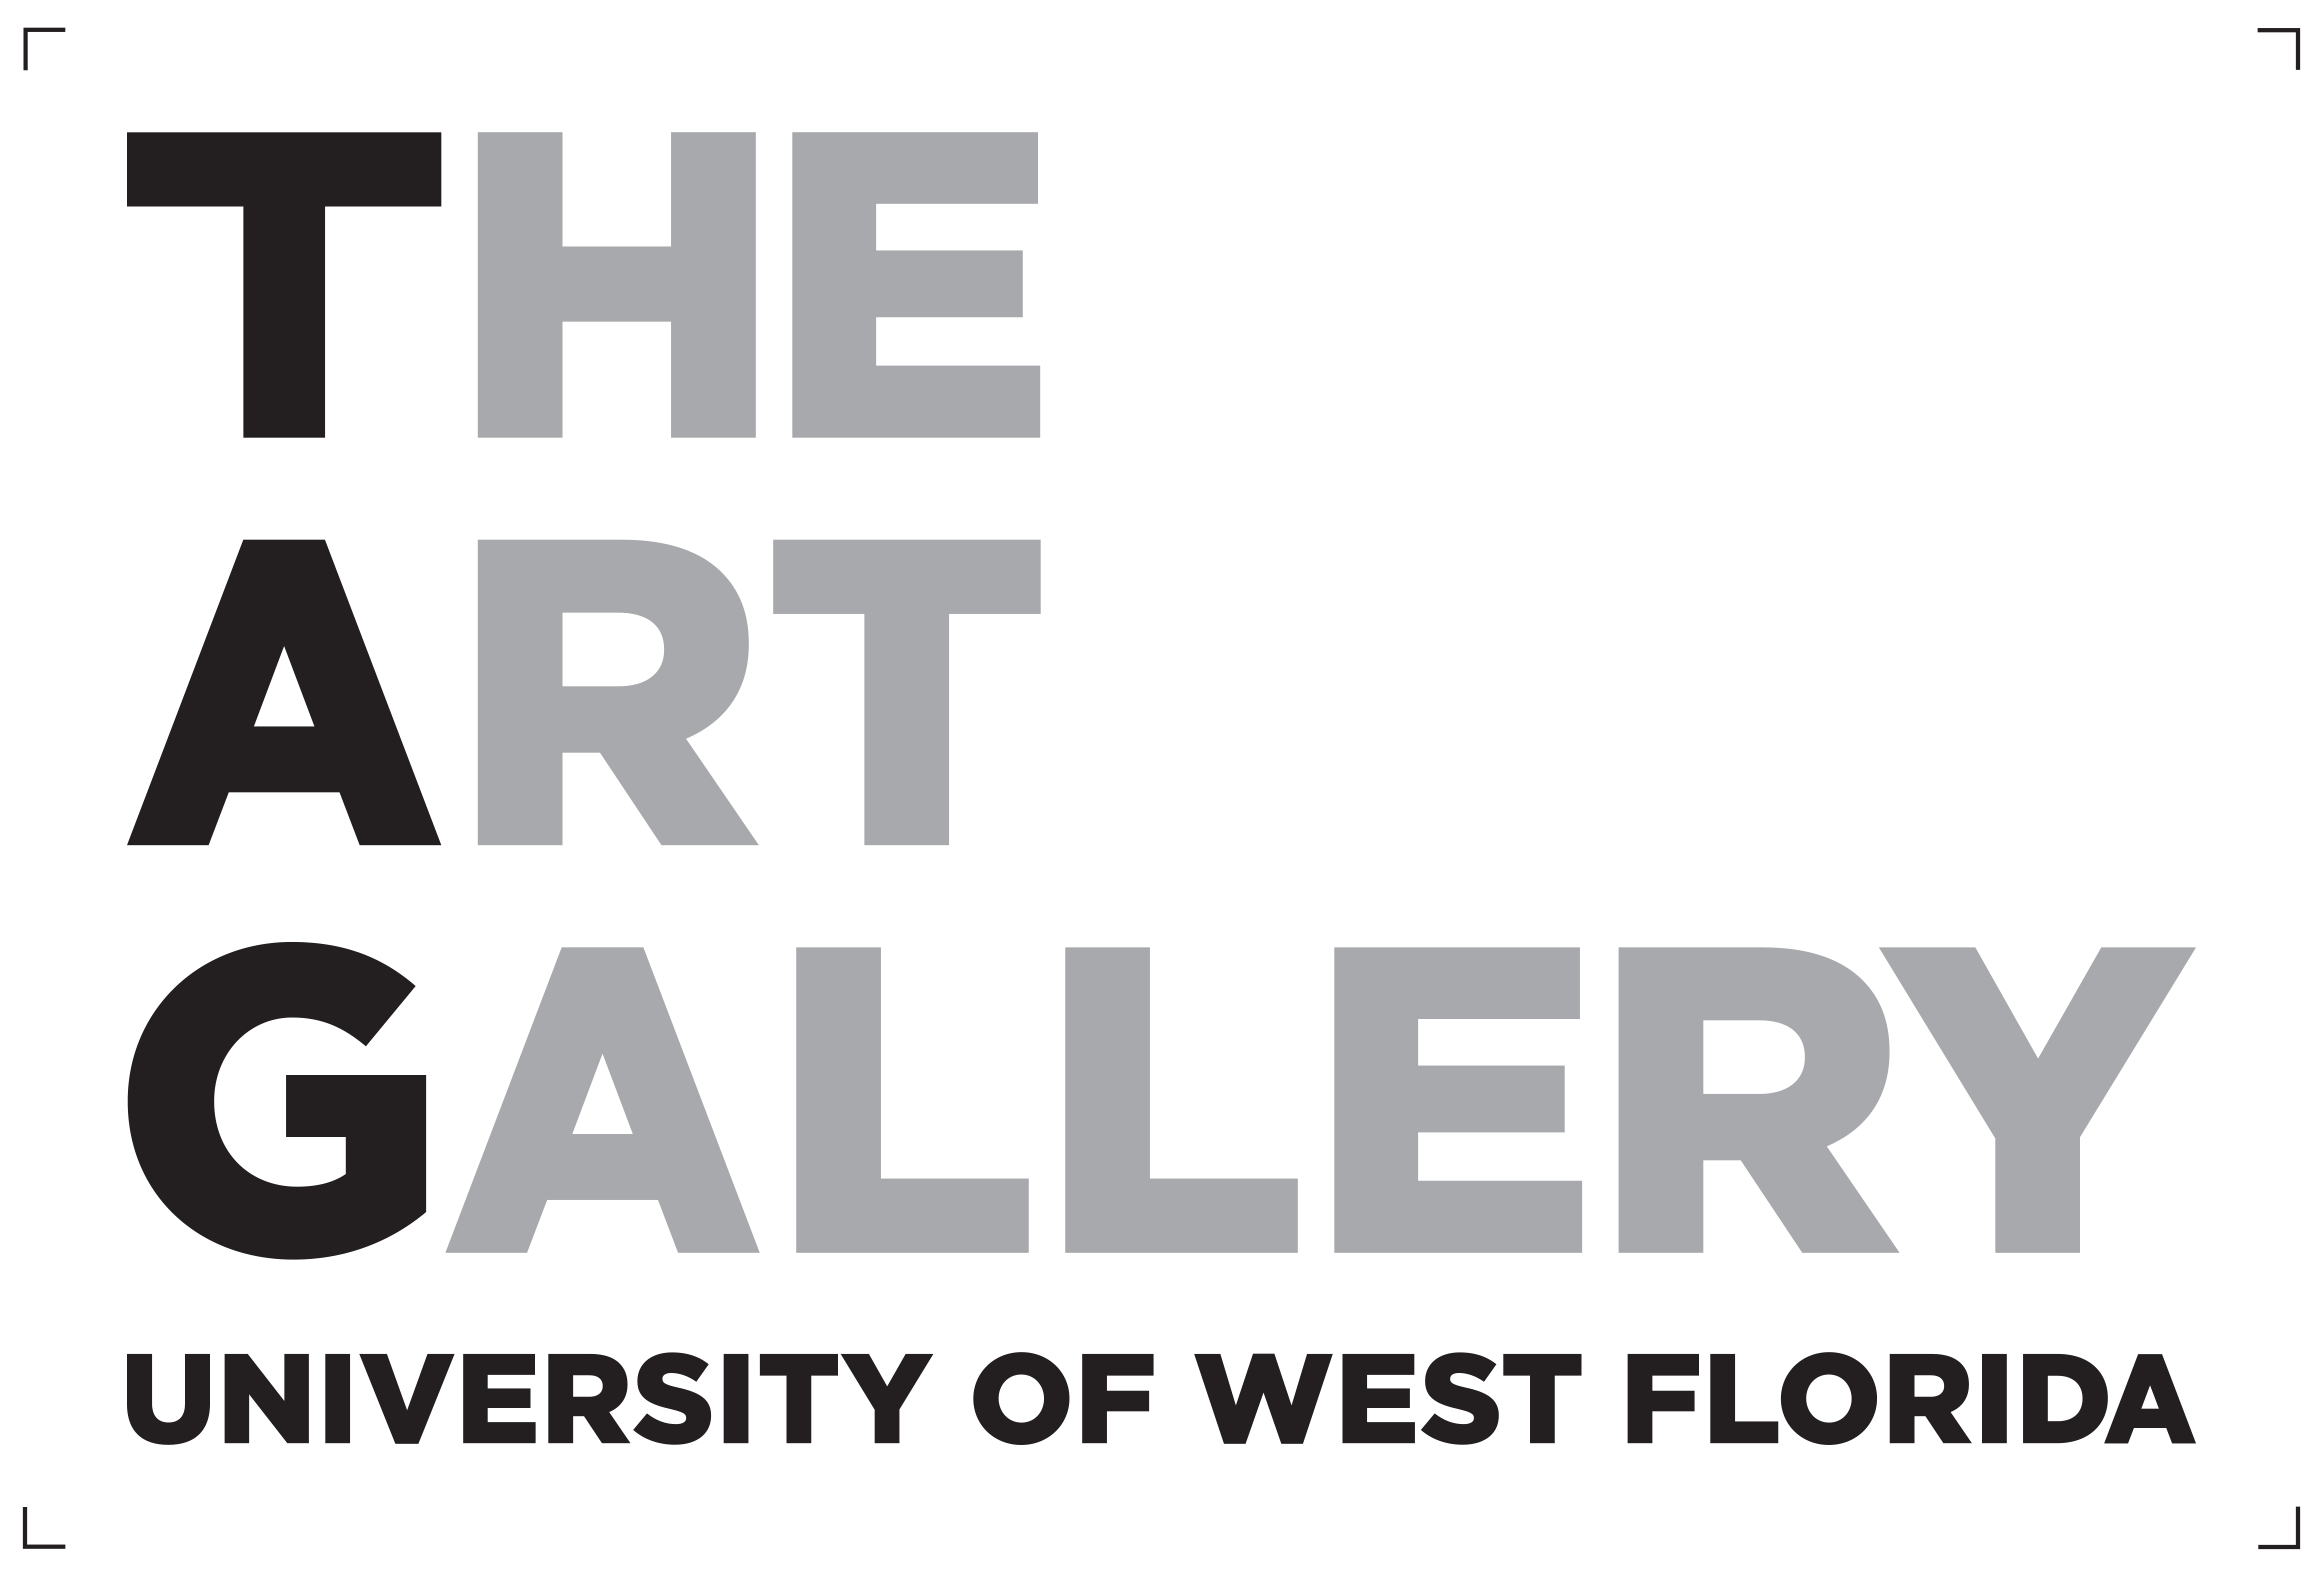 The Art Gallery at UWF